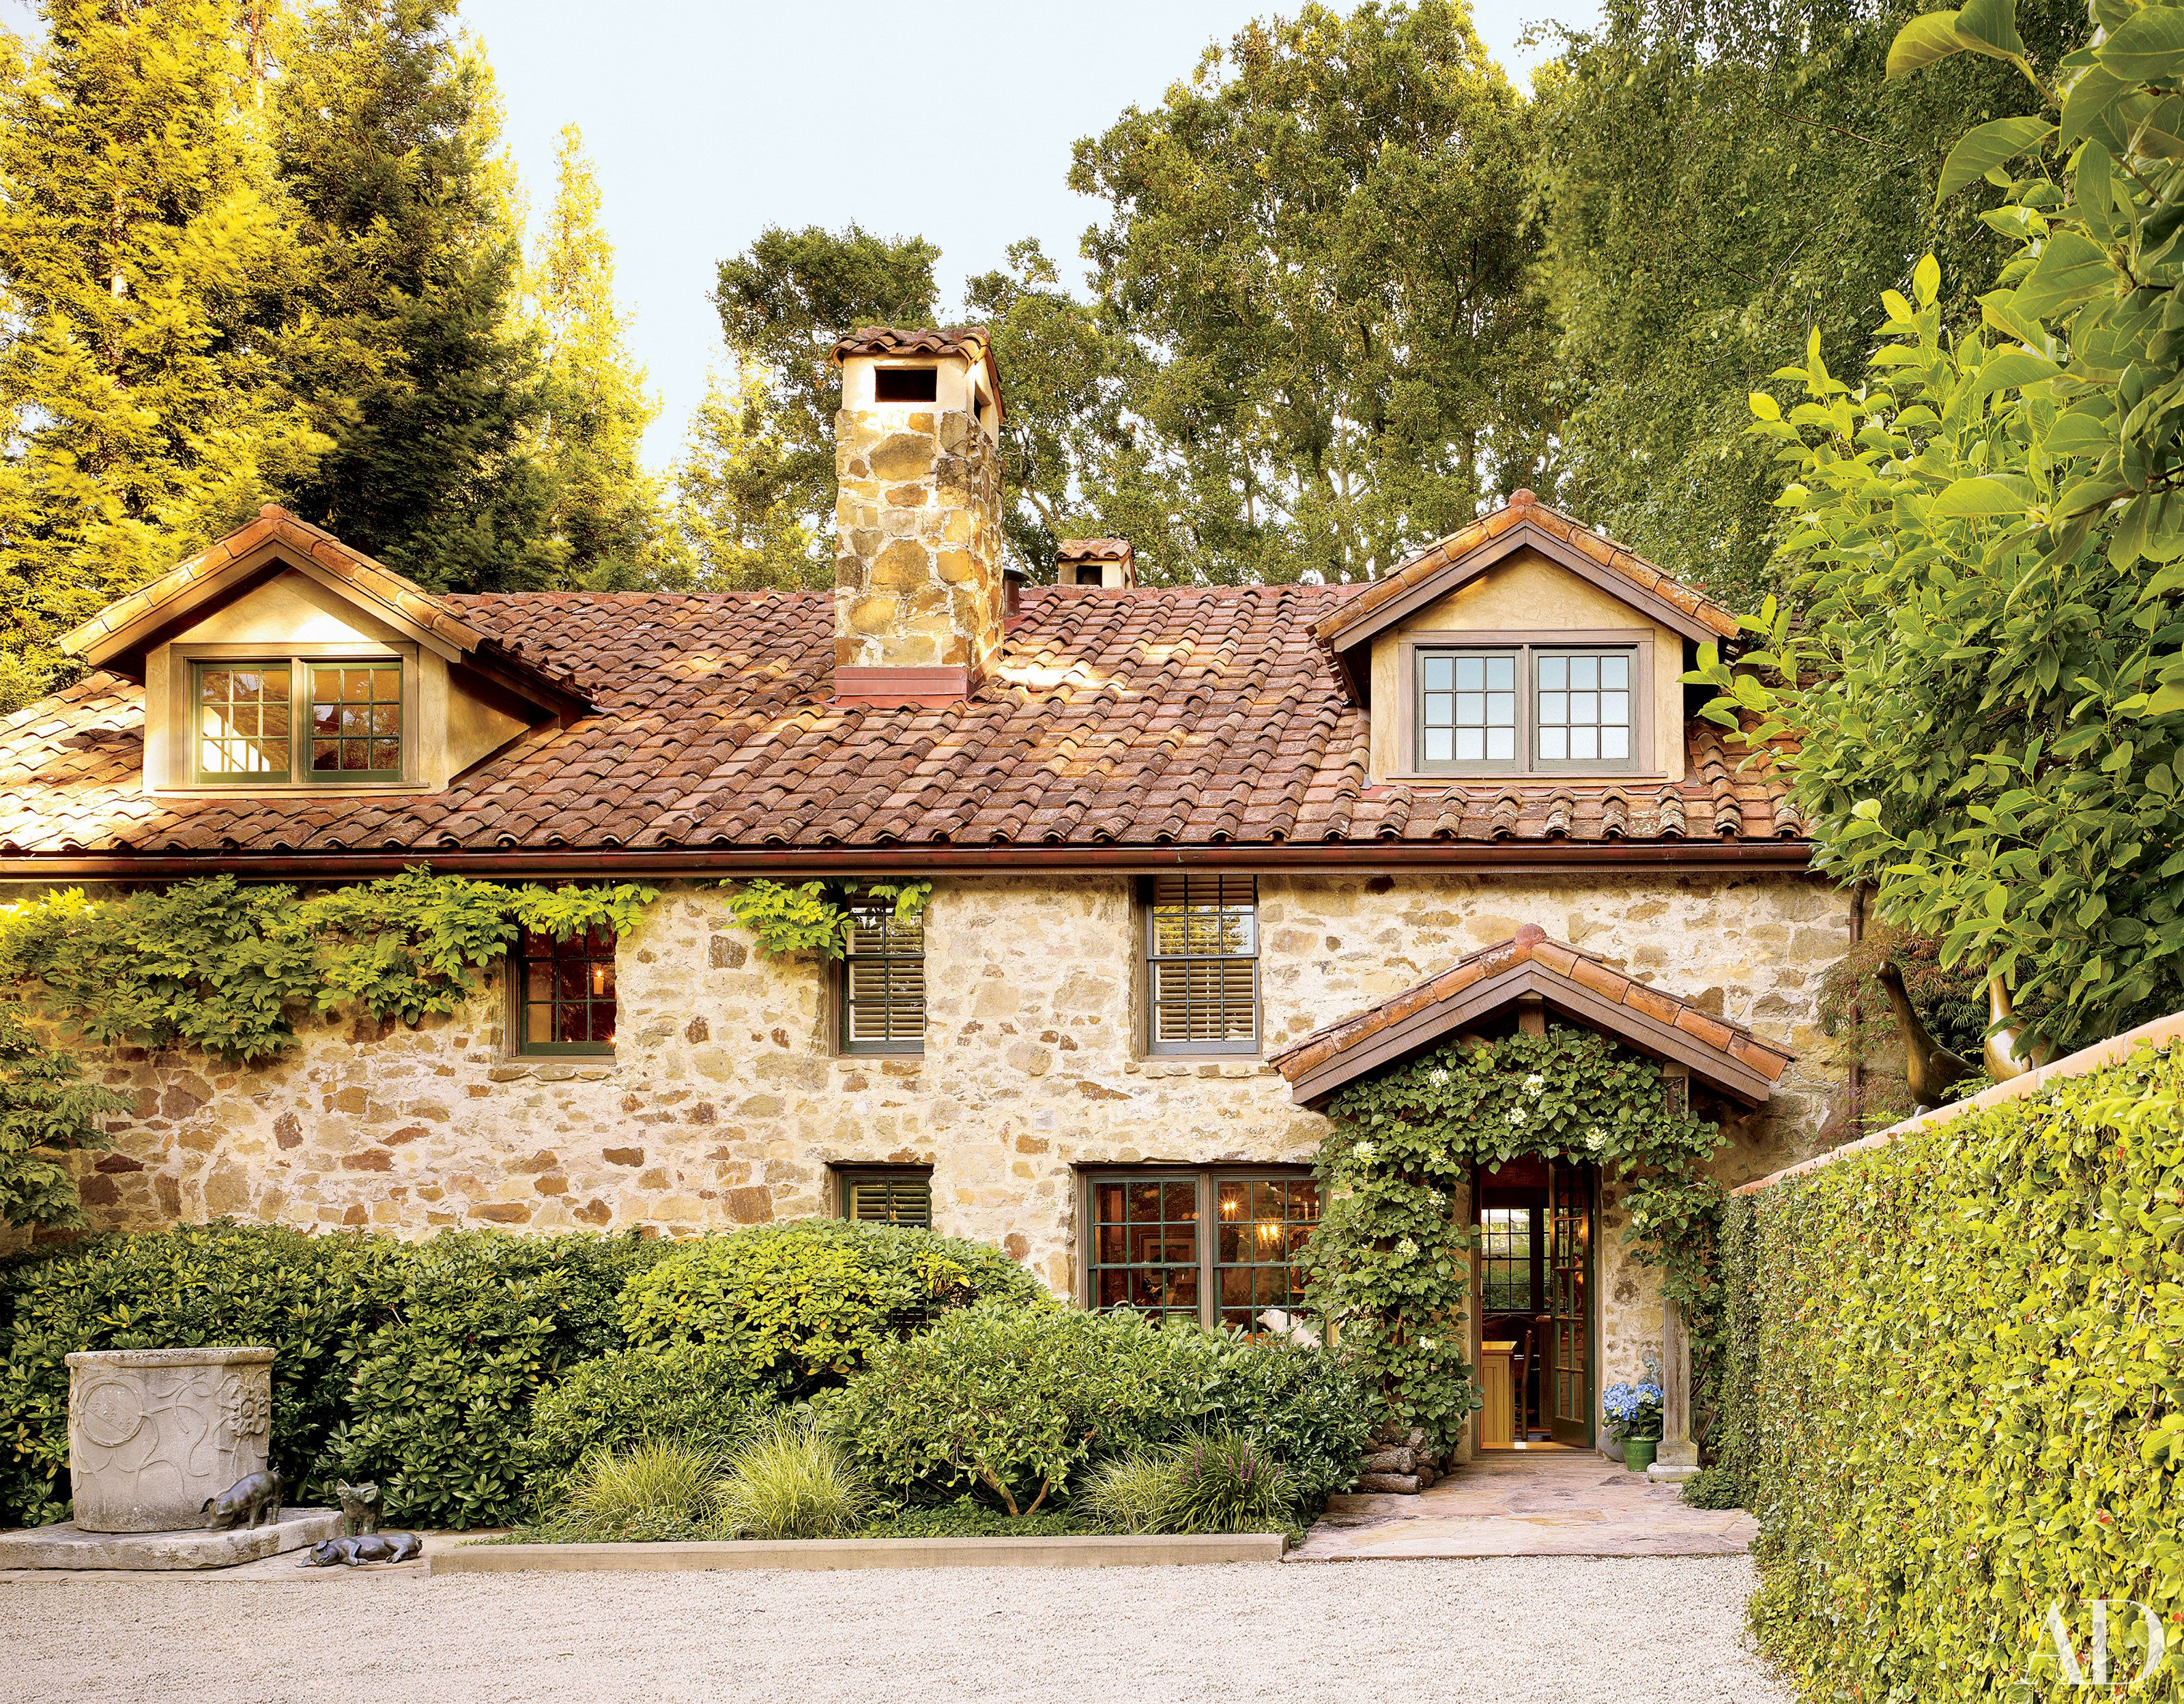 24 california home designs that will make you consider west coast